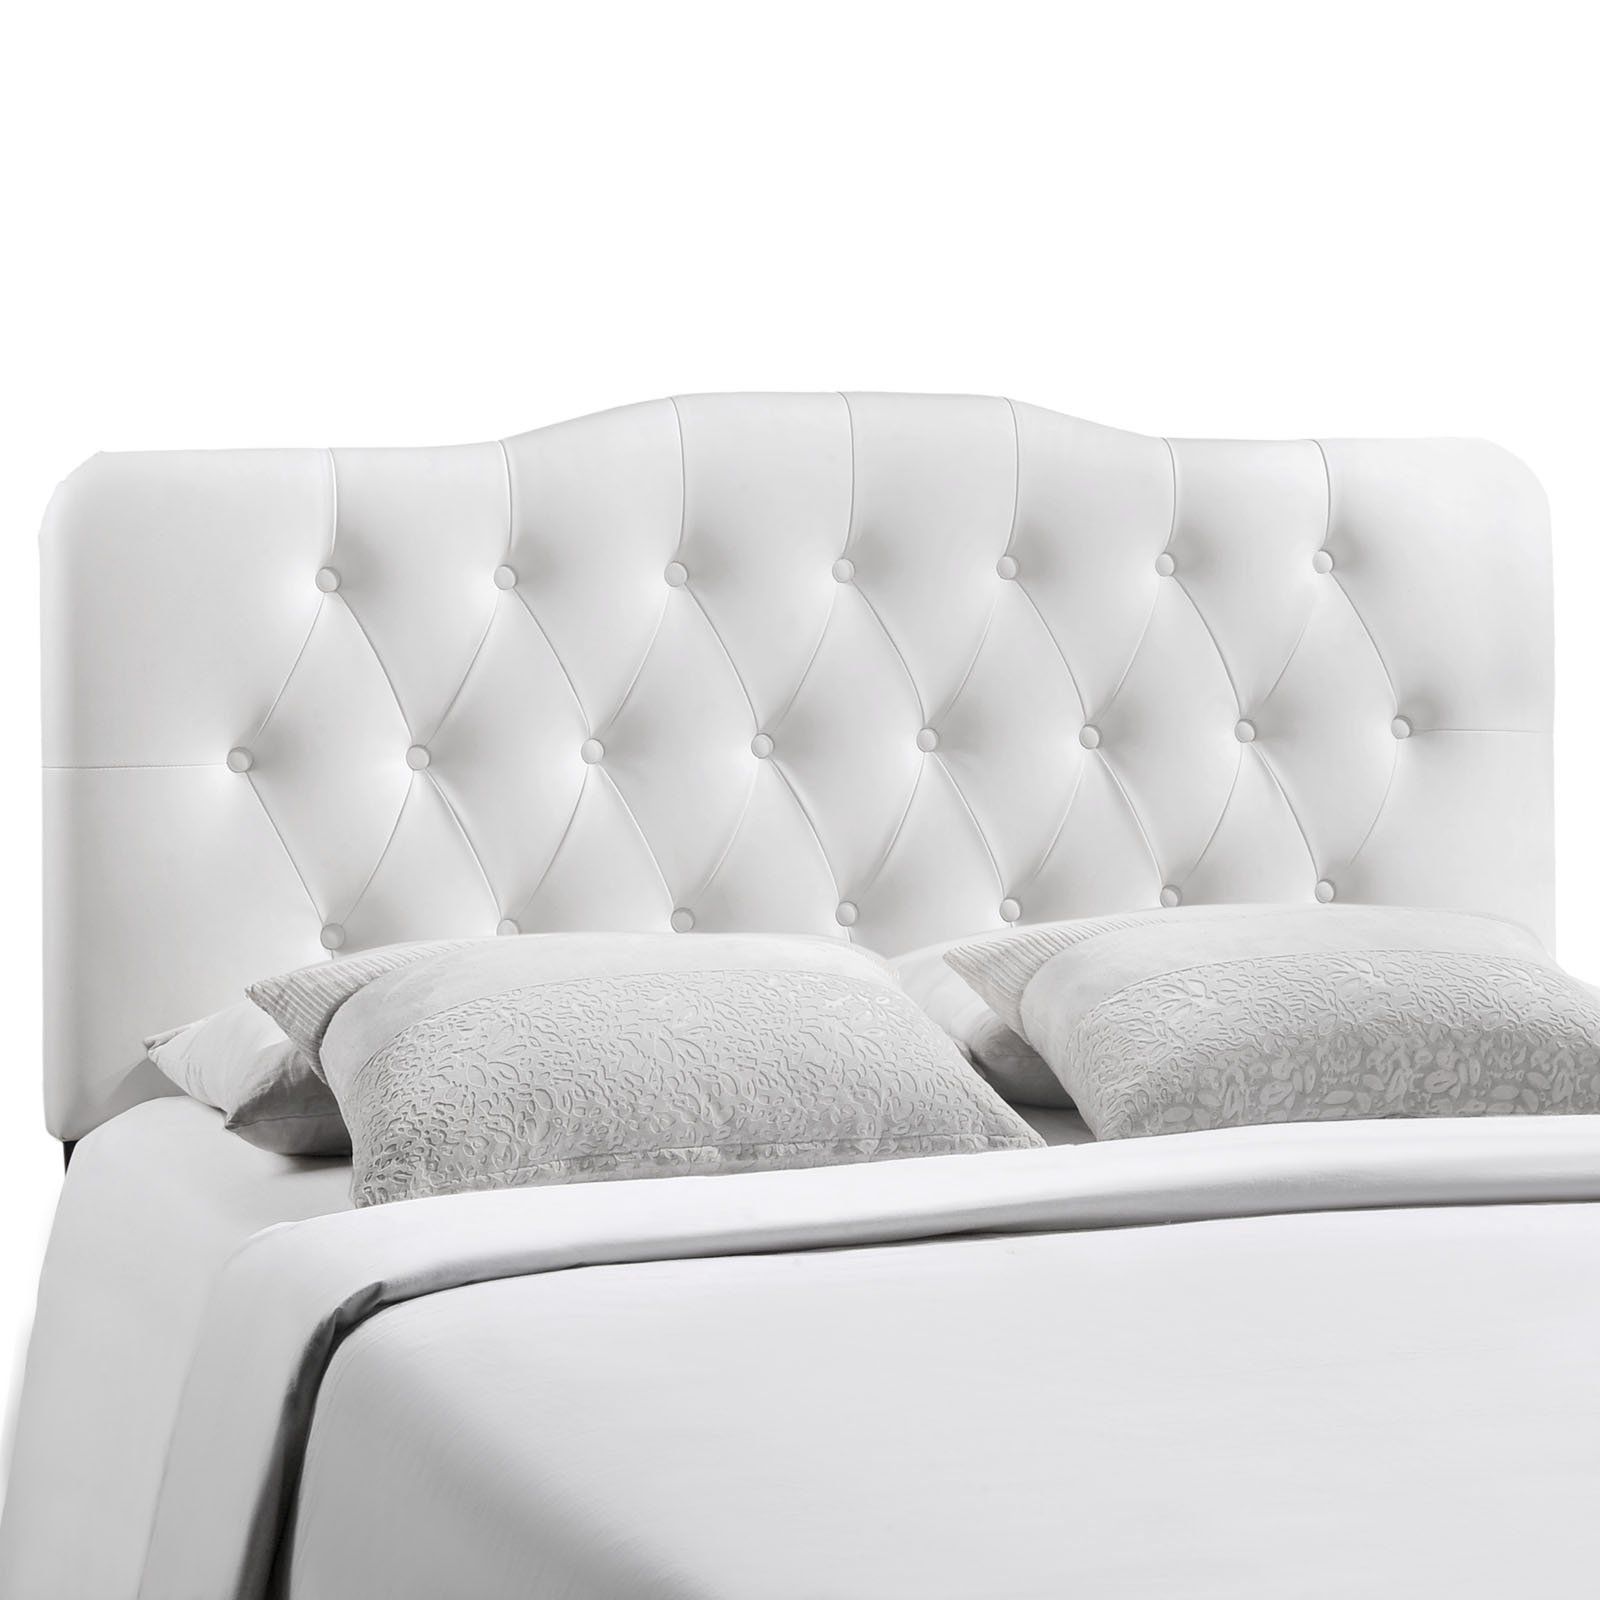 Modway Annabel Tufted Button Faux Leather Upholstered Full Headboard in White by Modway